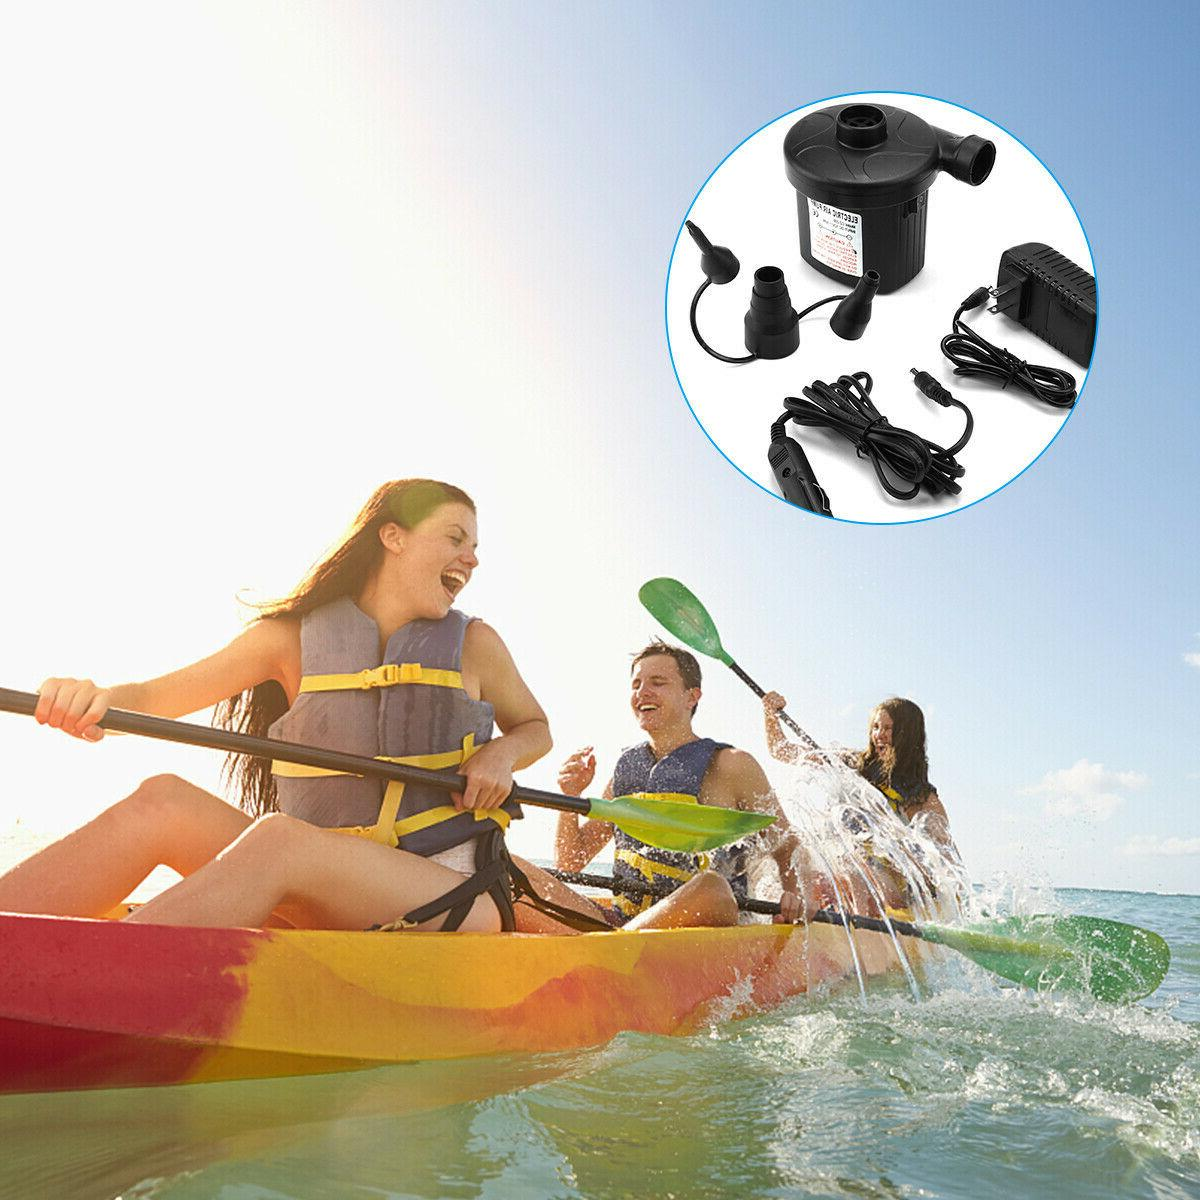 Electric for Air Mattress Raft Bed Boat Toy